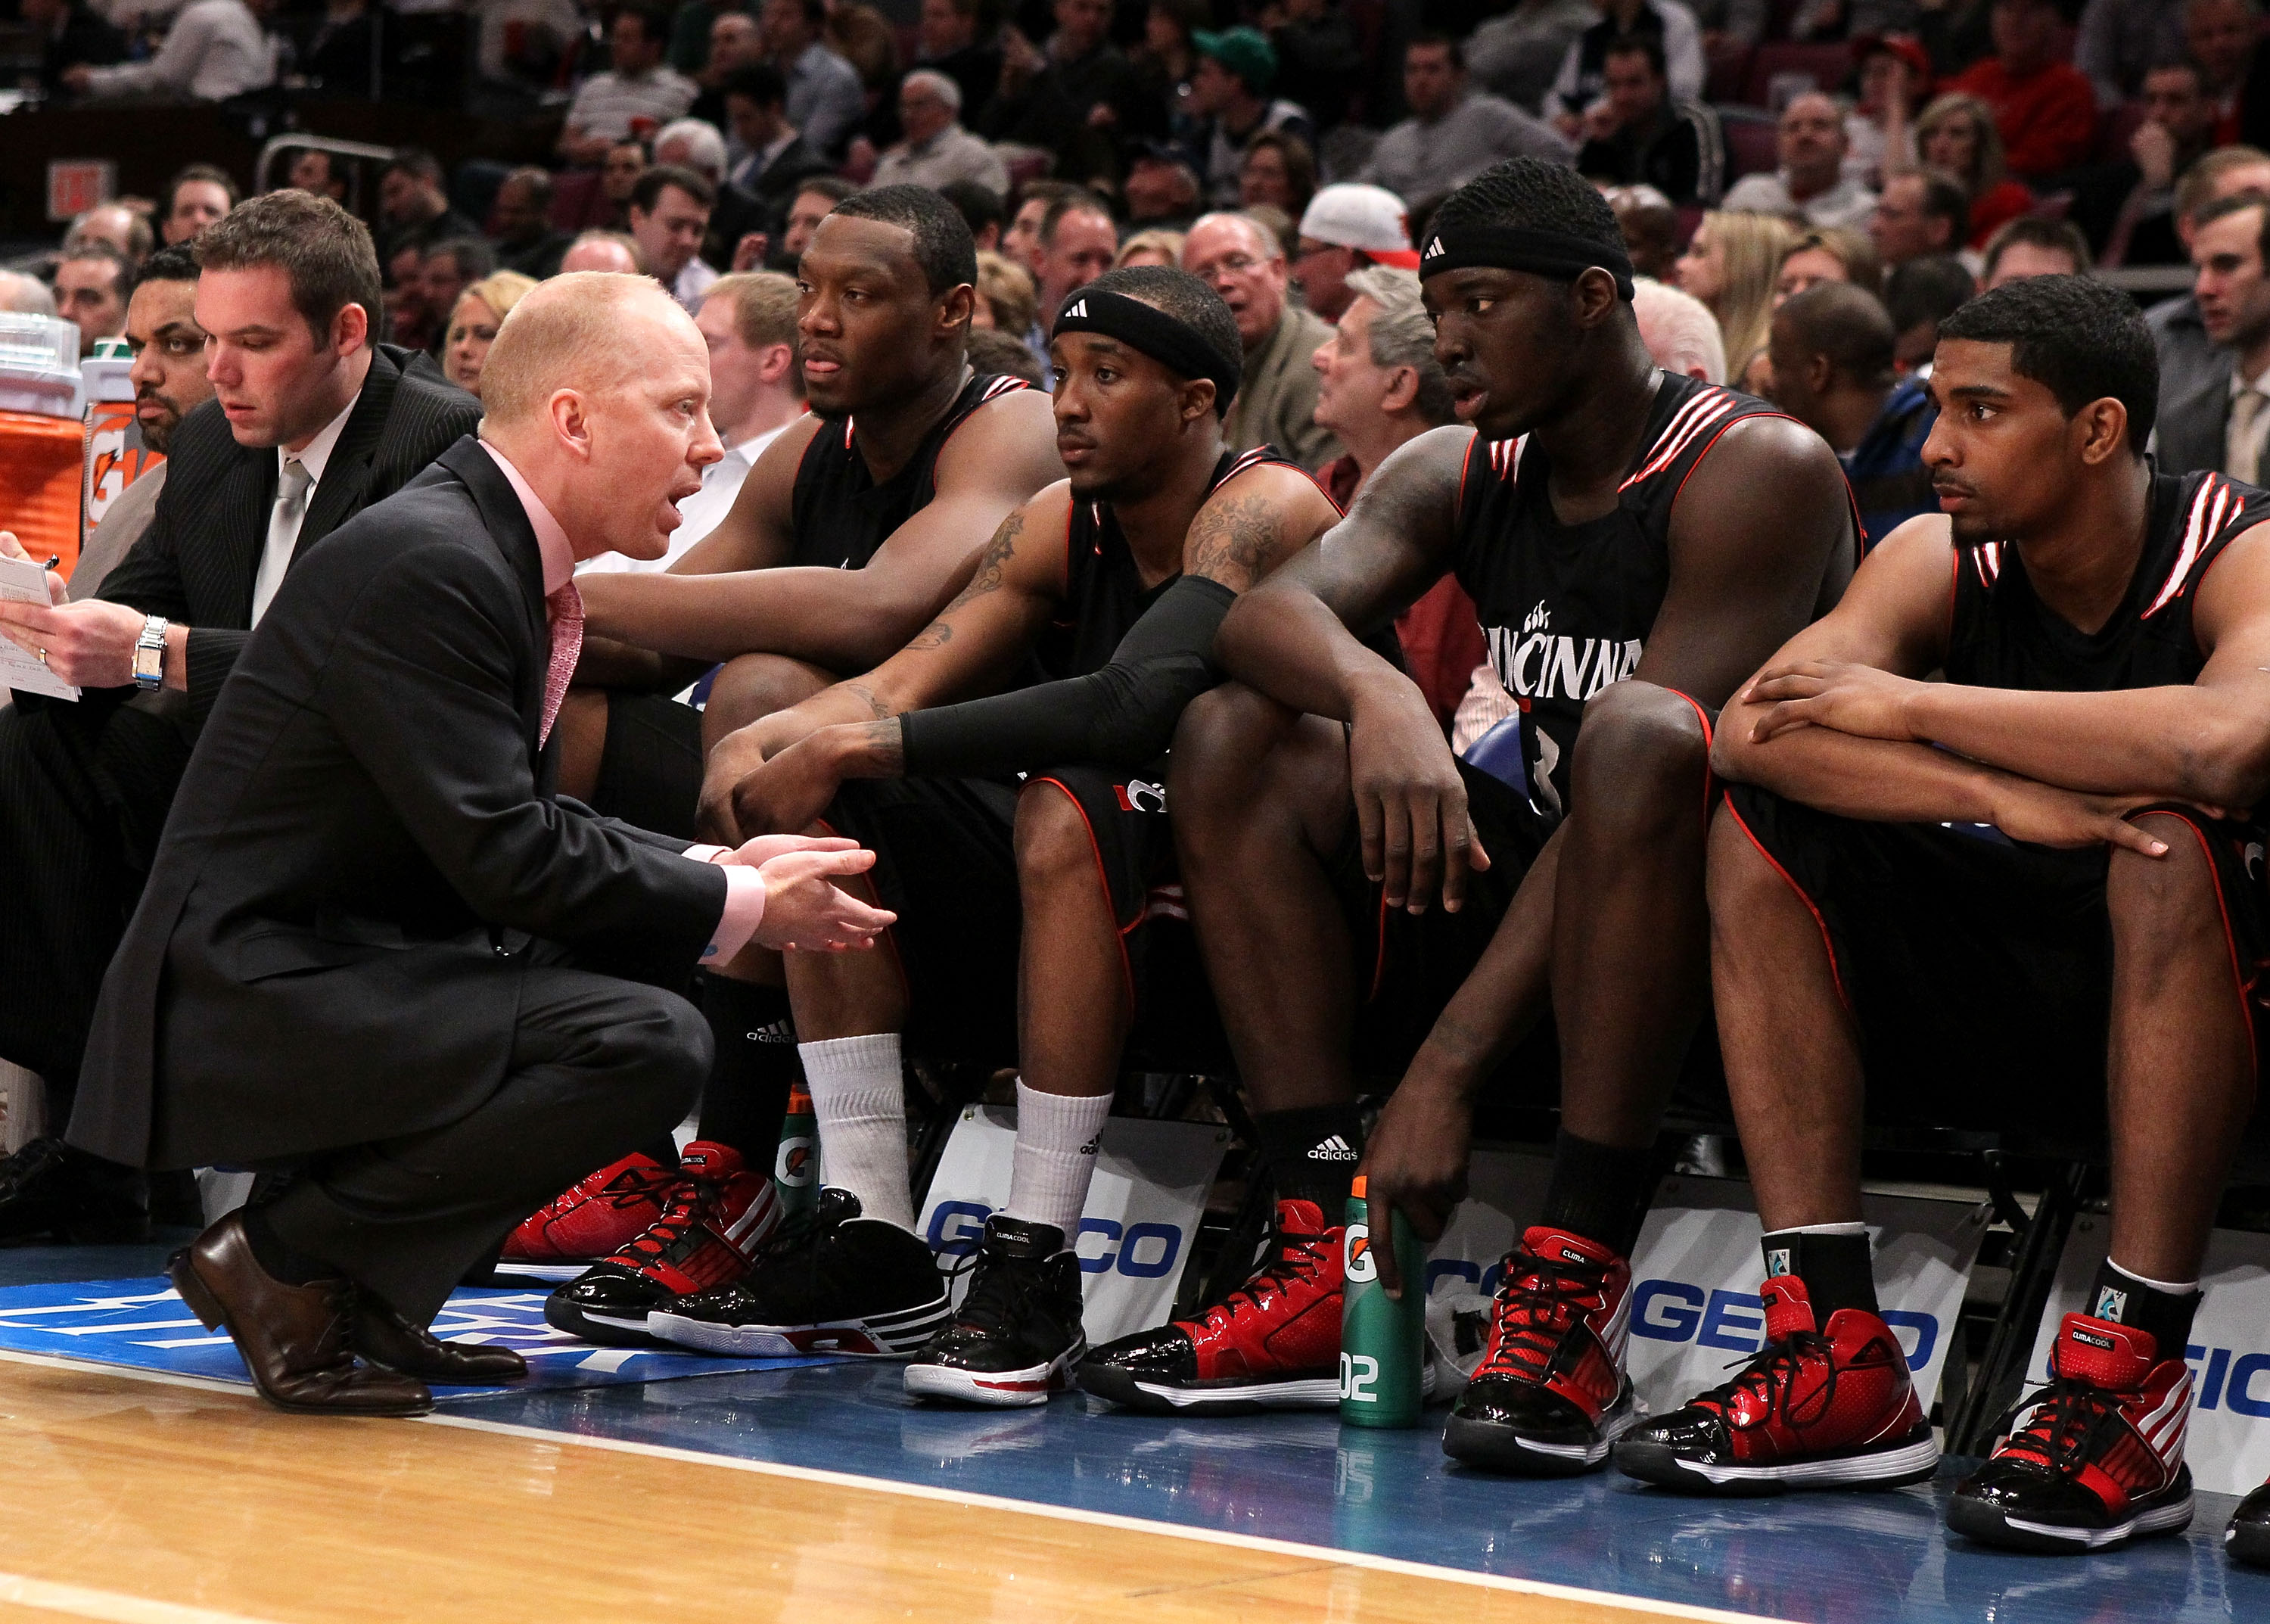 NEW YORK - MARCH 10: Head coach Mick Cronin of the Cincinnati Bearcats talks to his players against the Louisville Cardinals during the second round of 2010 NCAA Big East Tournament at Madison Square Garden on March 10, 2010 in New York City.  (Photo by J